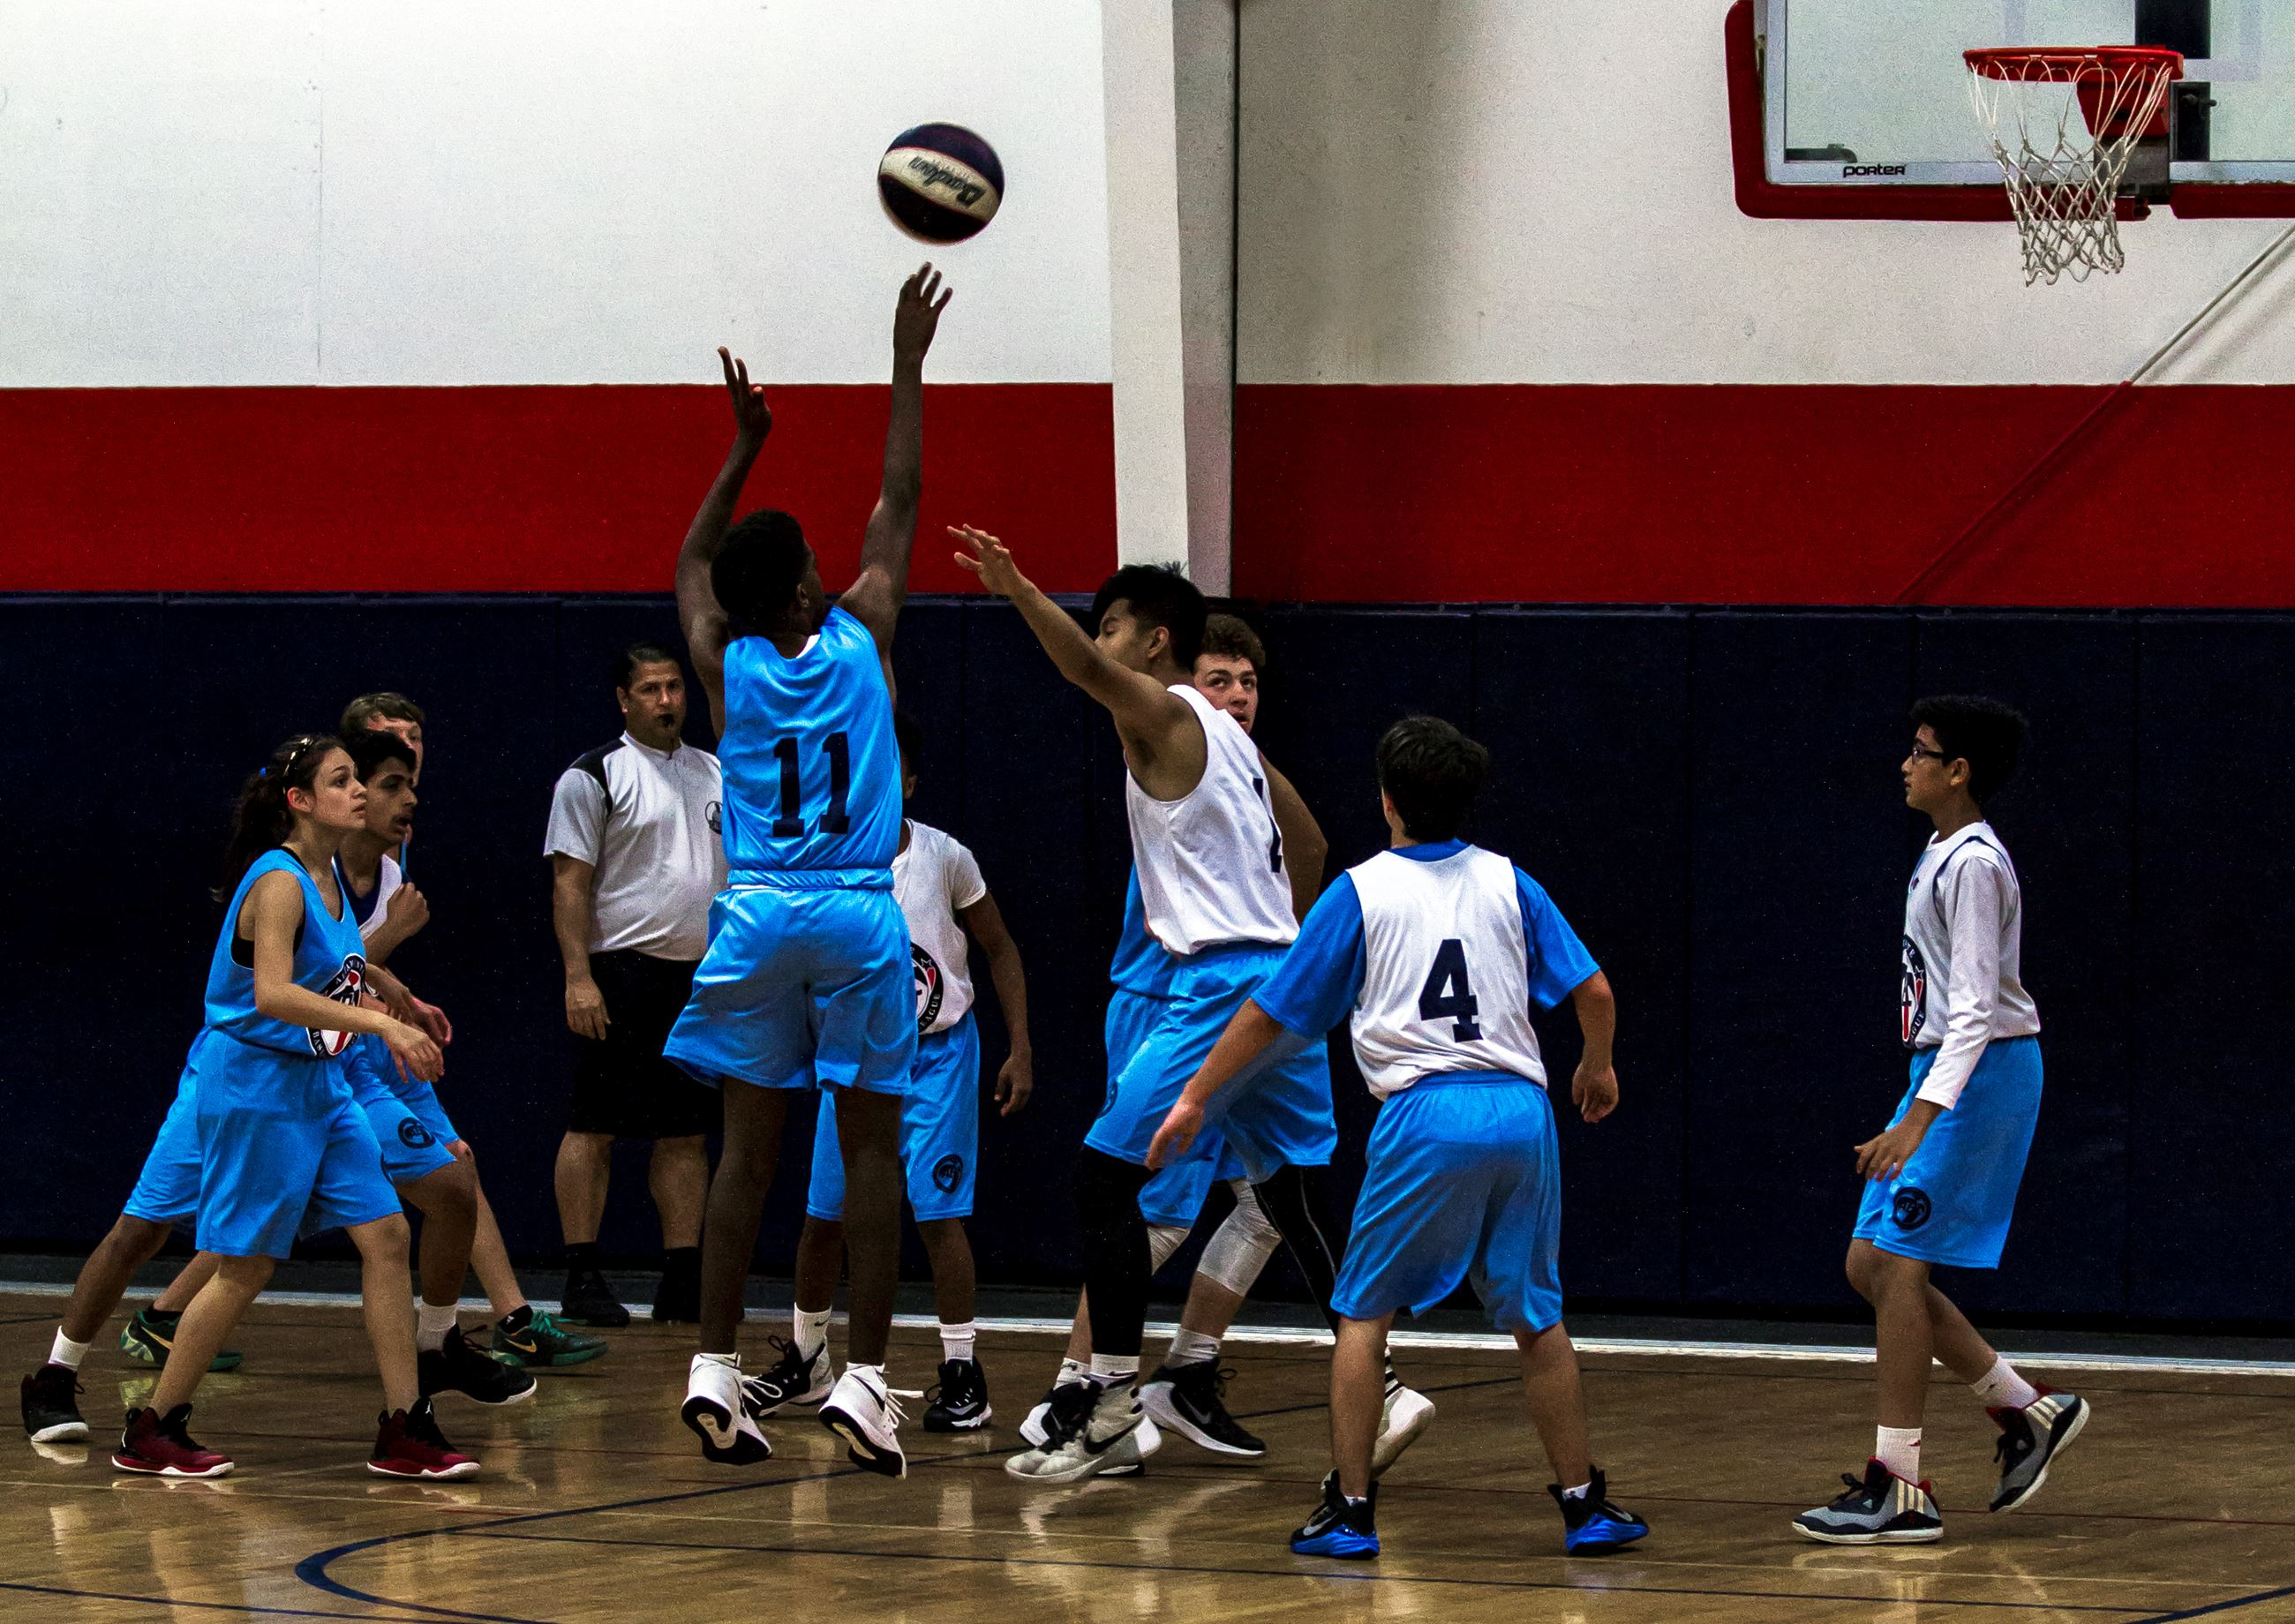 ABL League Play